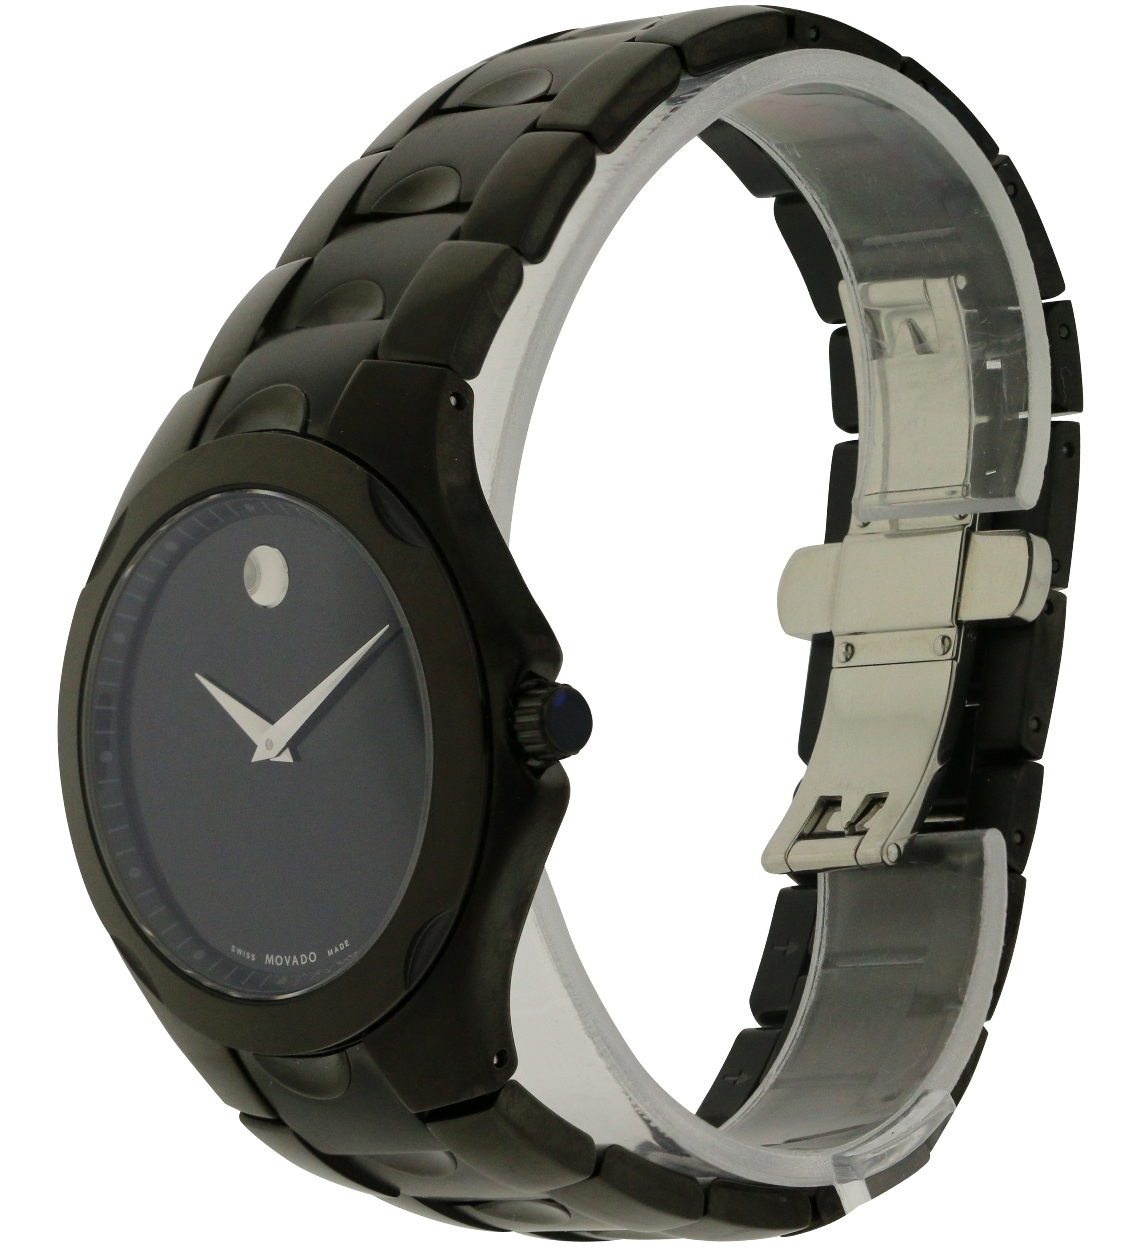 movado watch solomon sport item luno co watches brothers